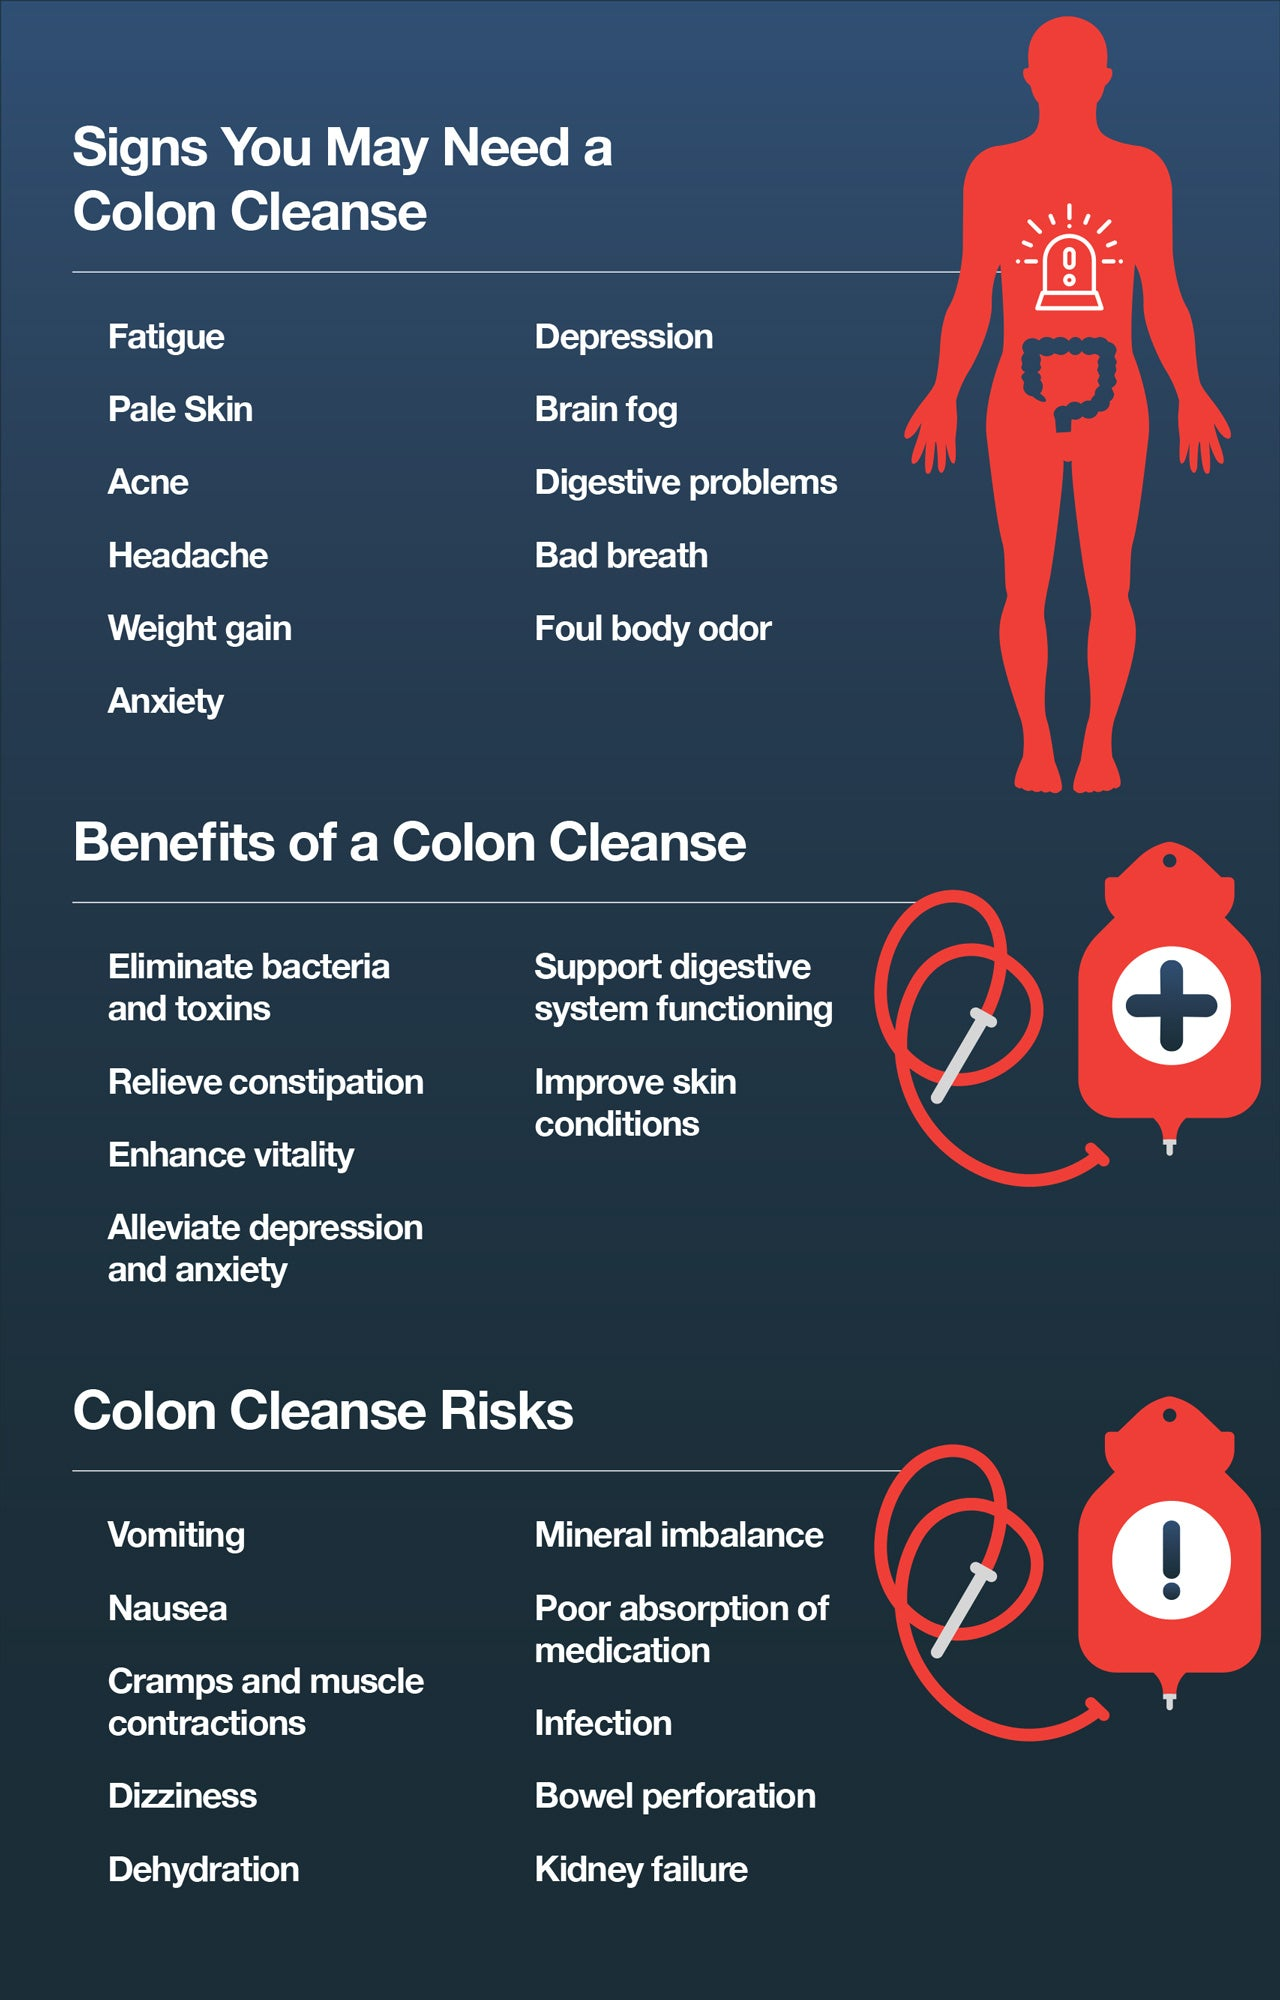 Here are some signs that you may need a colon cleanse and the benefits of getting one.